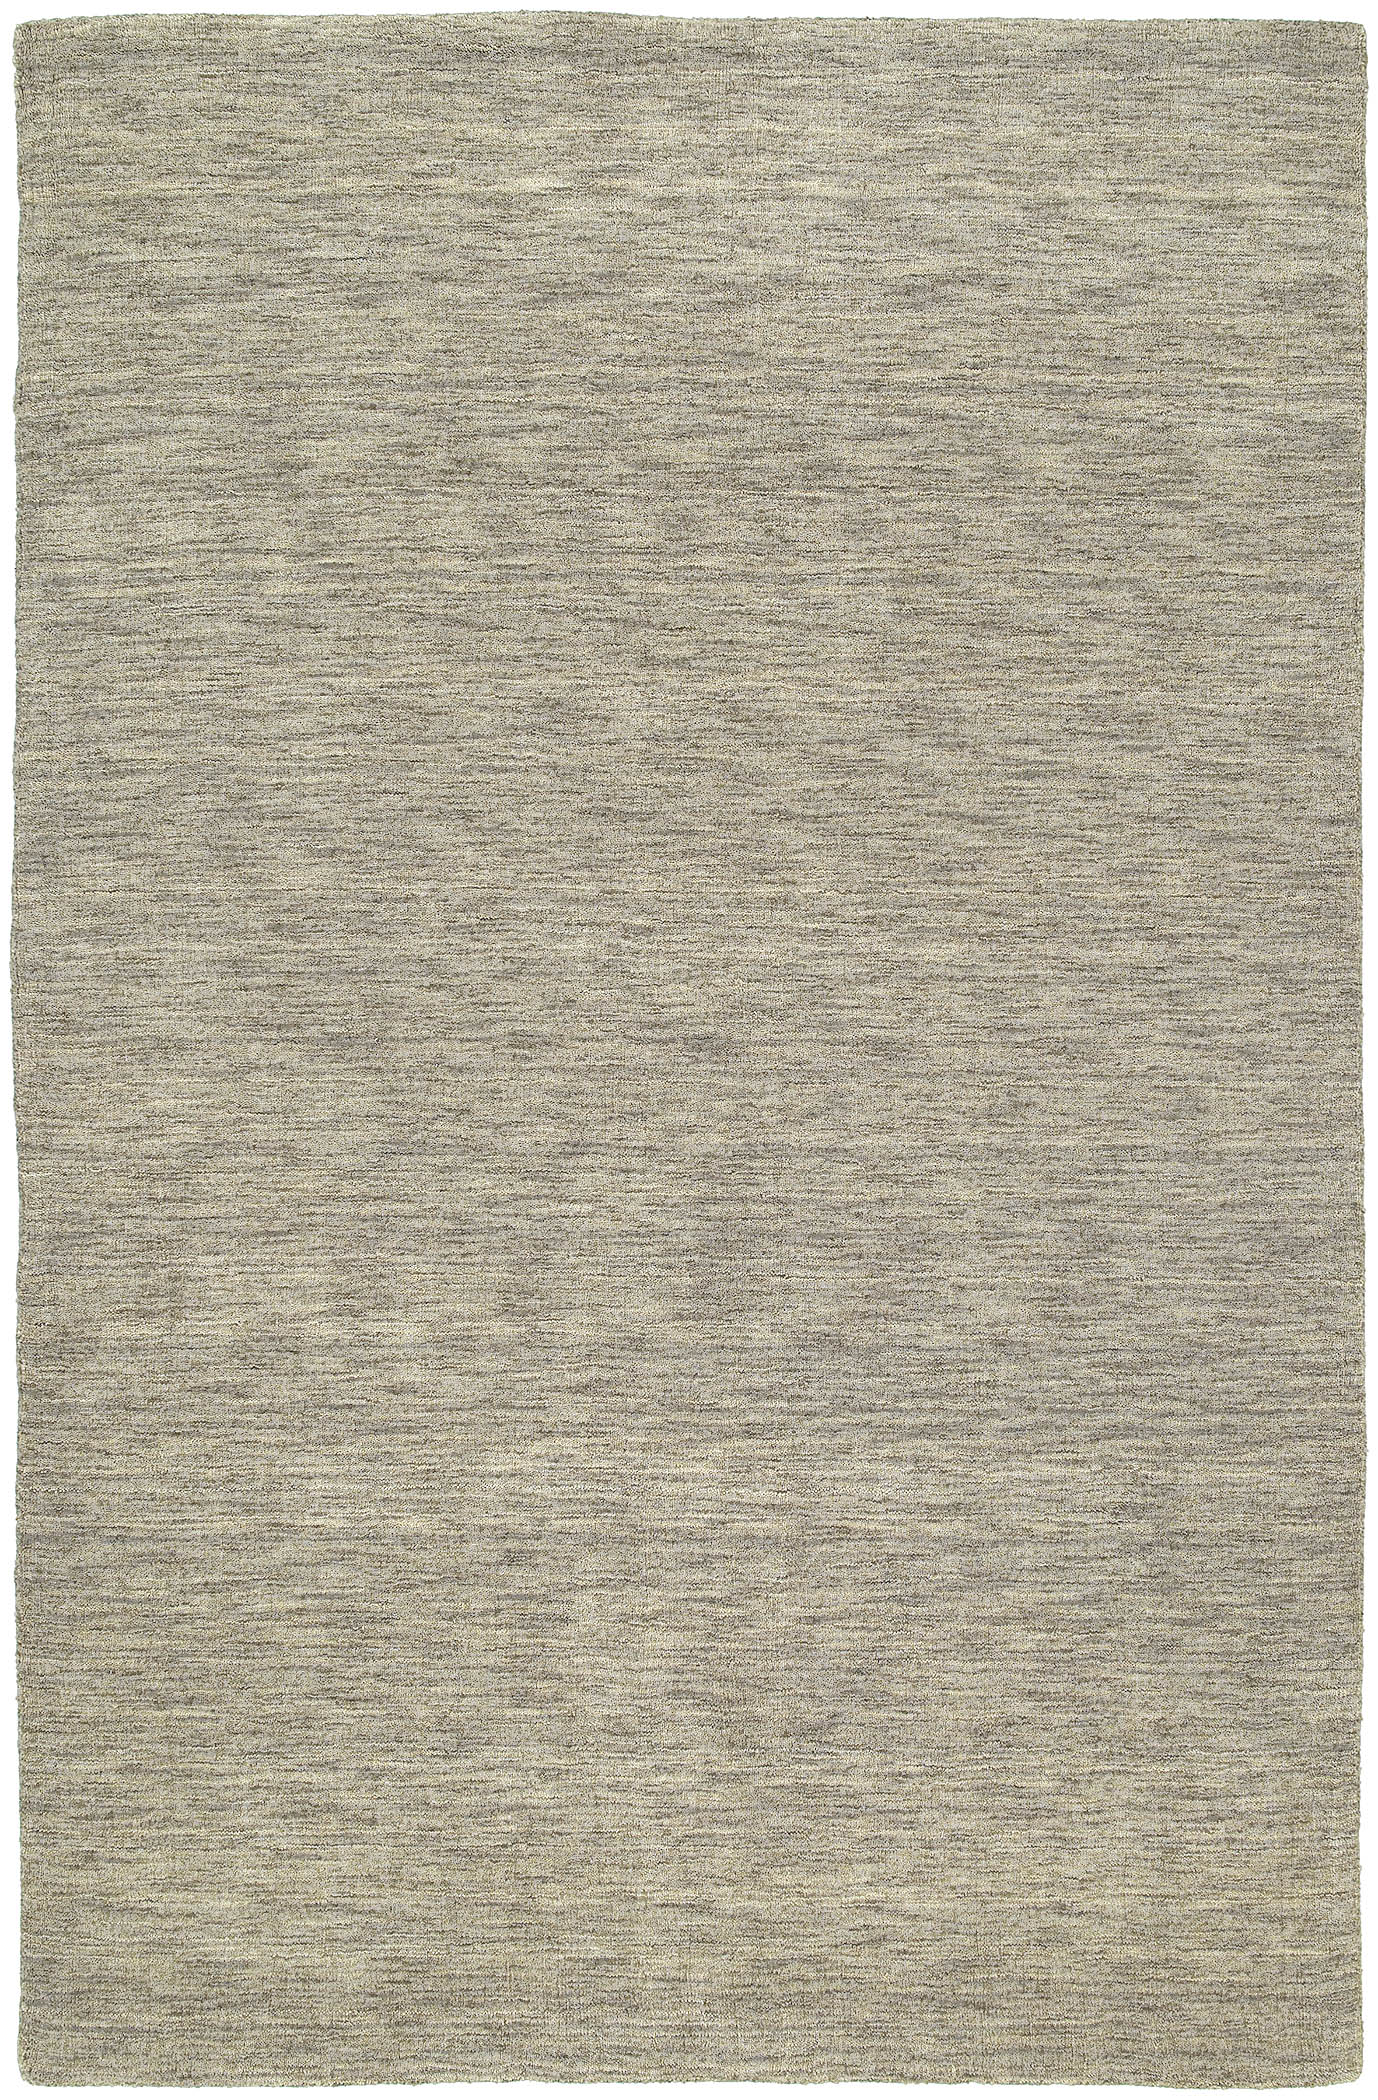 Renaissance 4500 49 Brown Rug by Kaleen